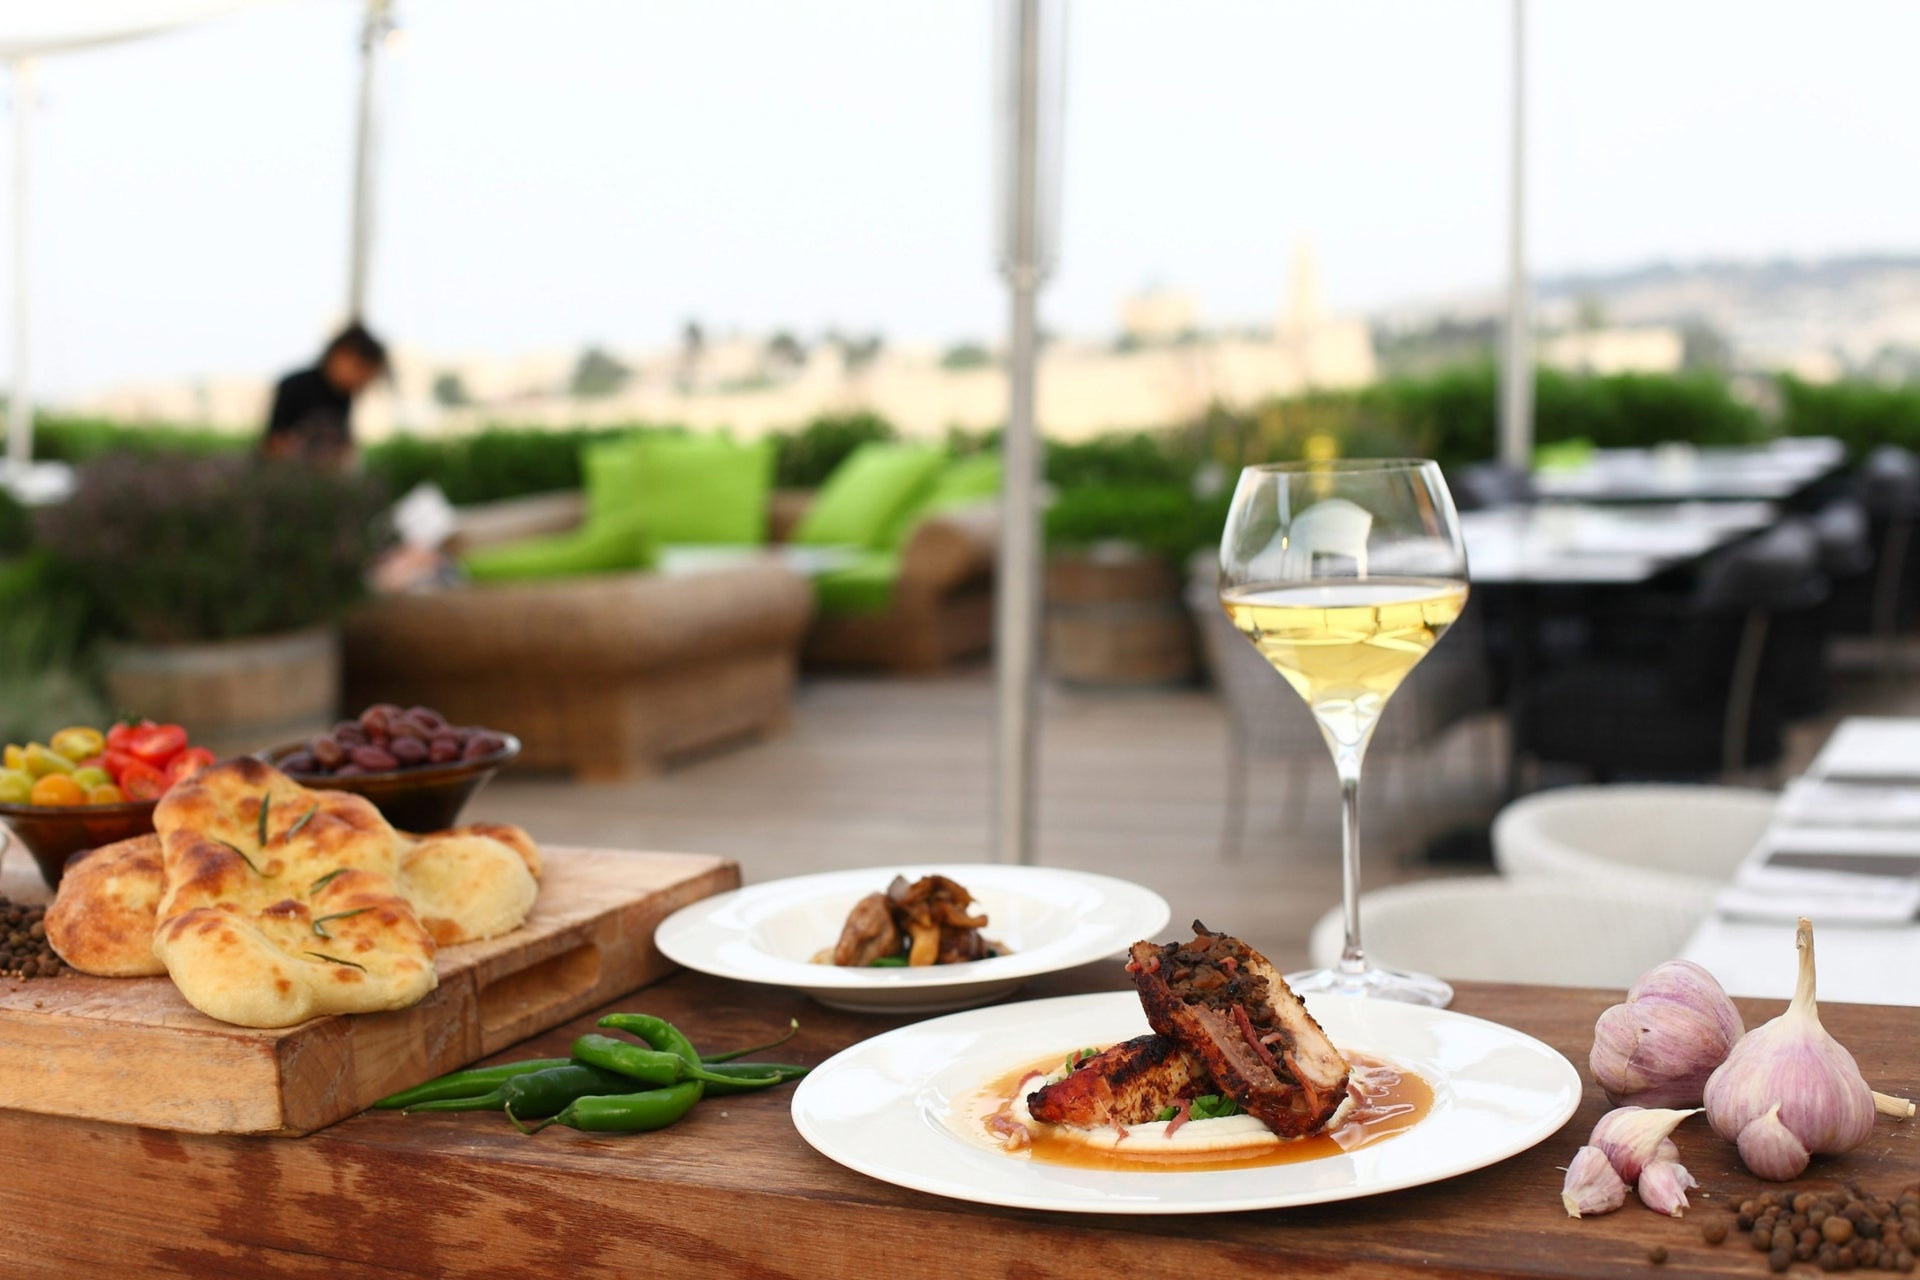 Food and drink from Jerusalem's RoofTop Restaurant in the Mamilla Hotel. Taking local food into the realm of haute cuisine.